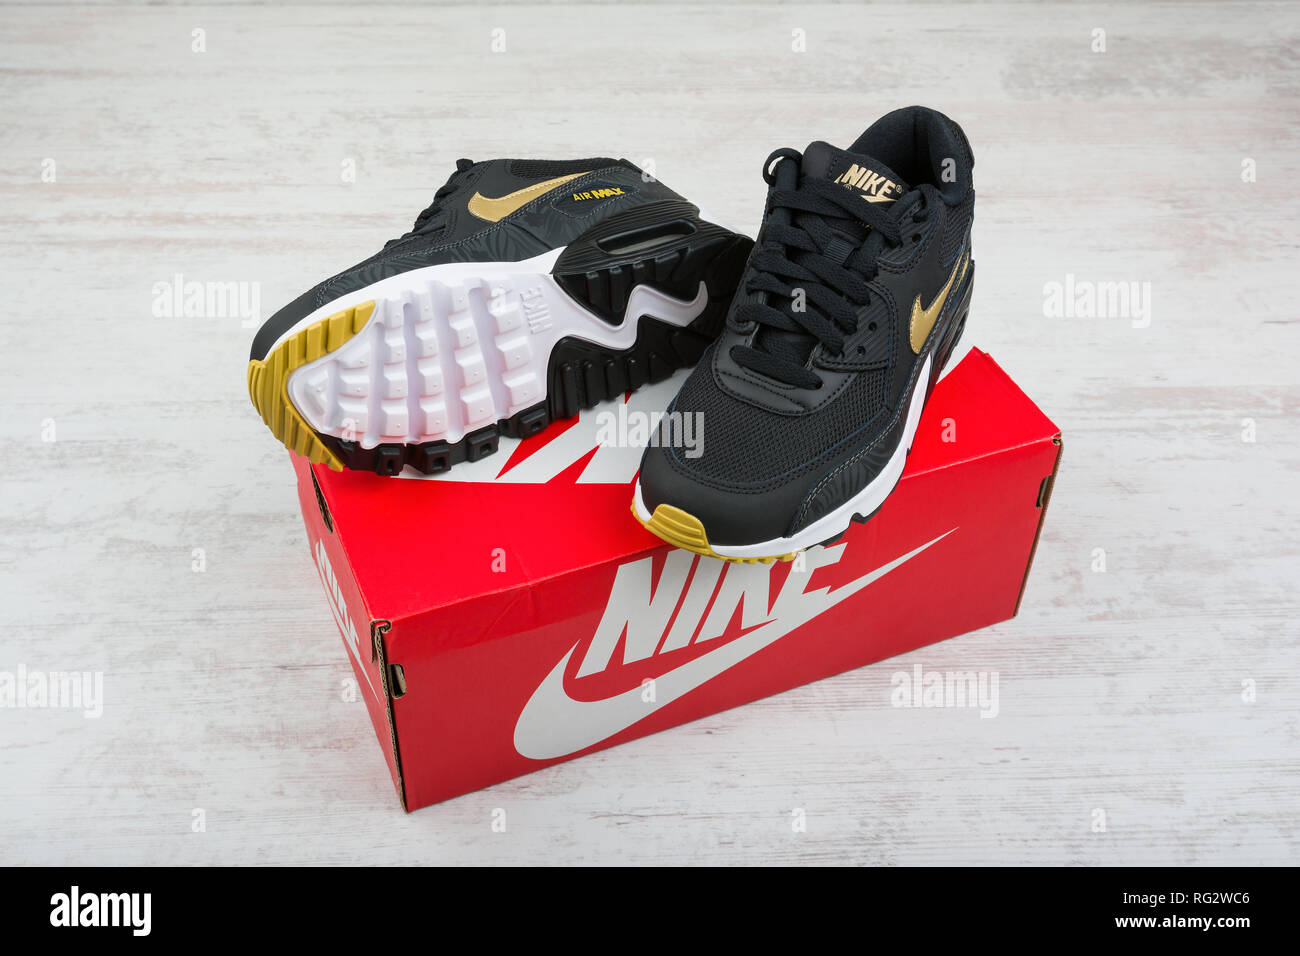 Nike Clothes Photos & Nike Clothes Images Alamy